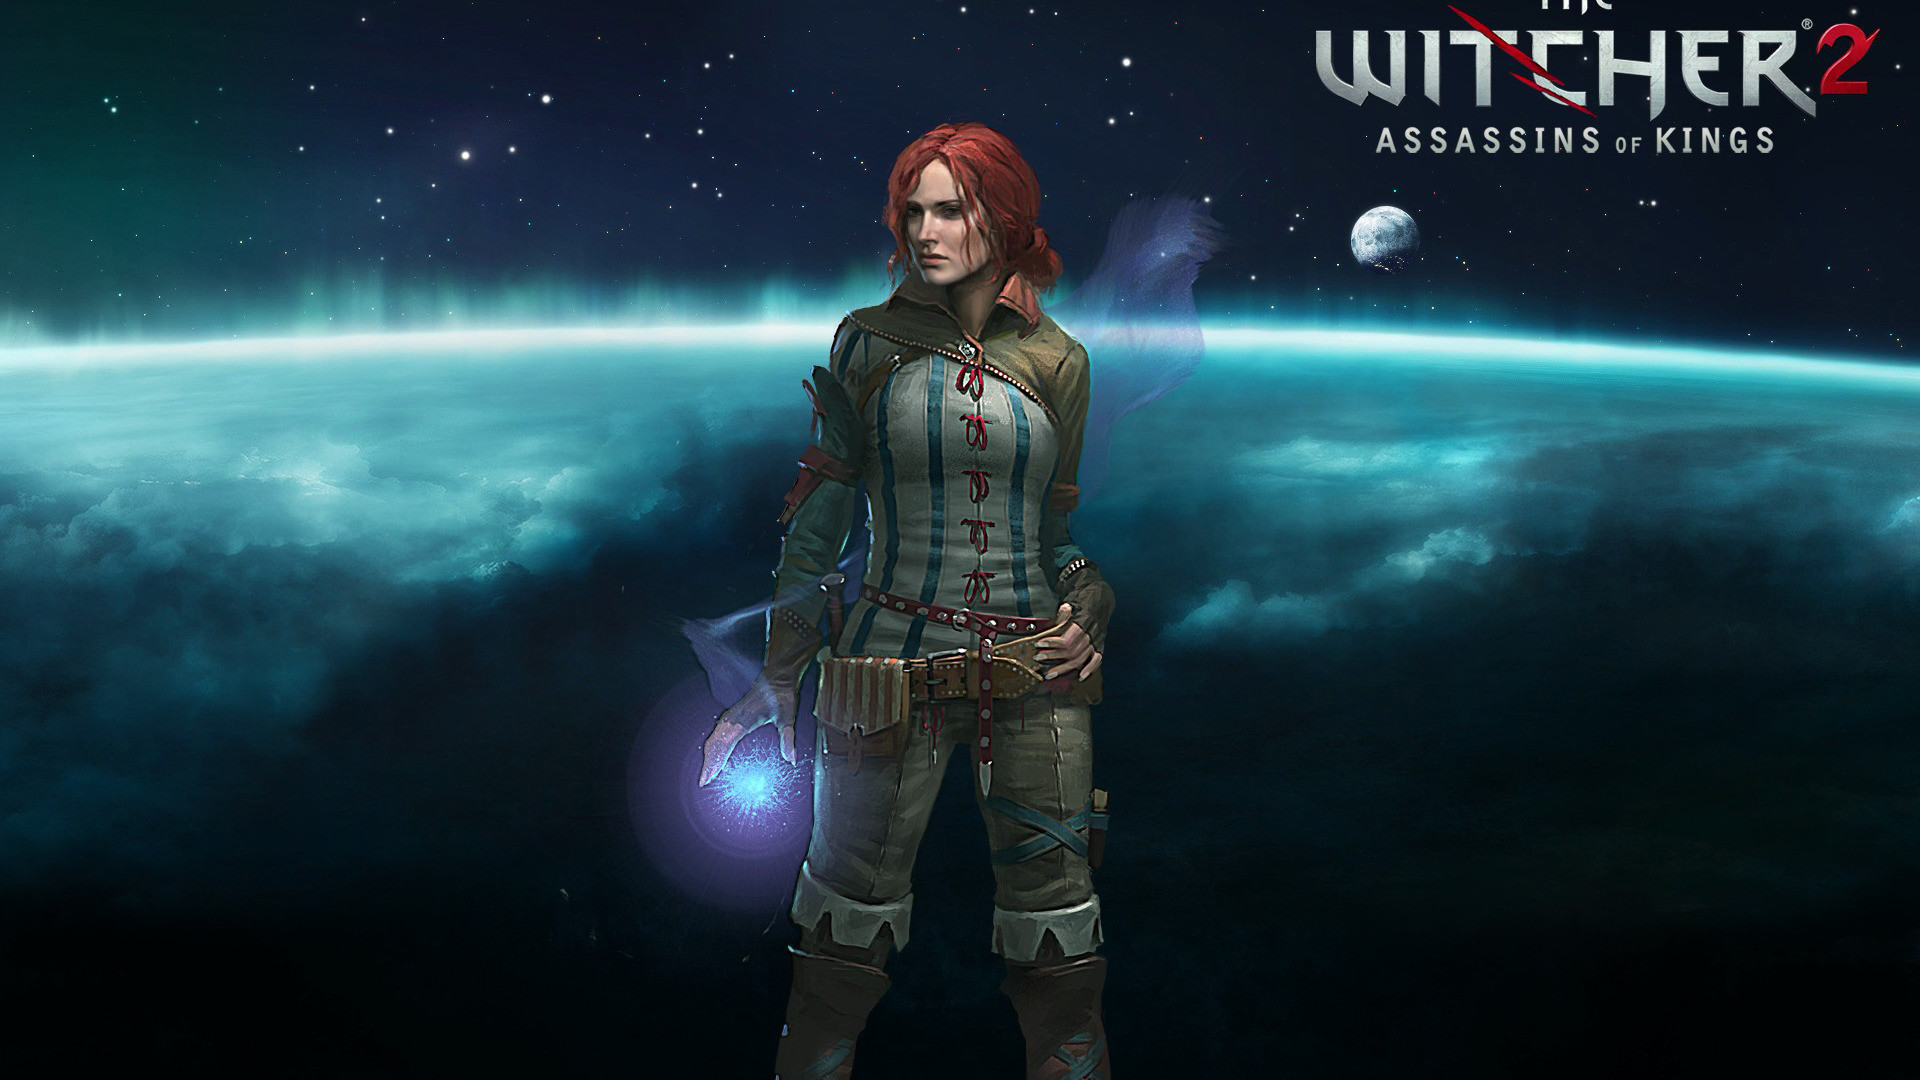 The Witcher 3 Triss Wallpaper (84+ images)